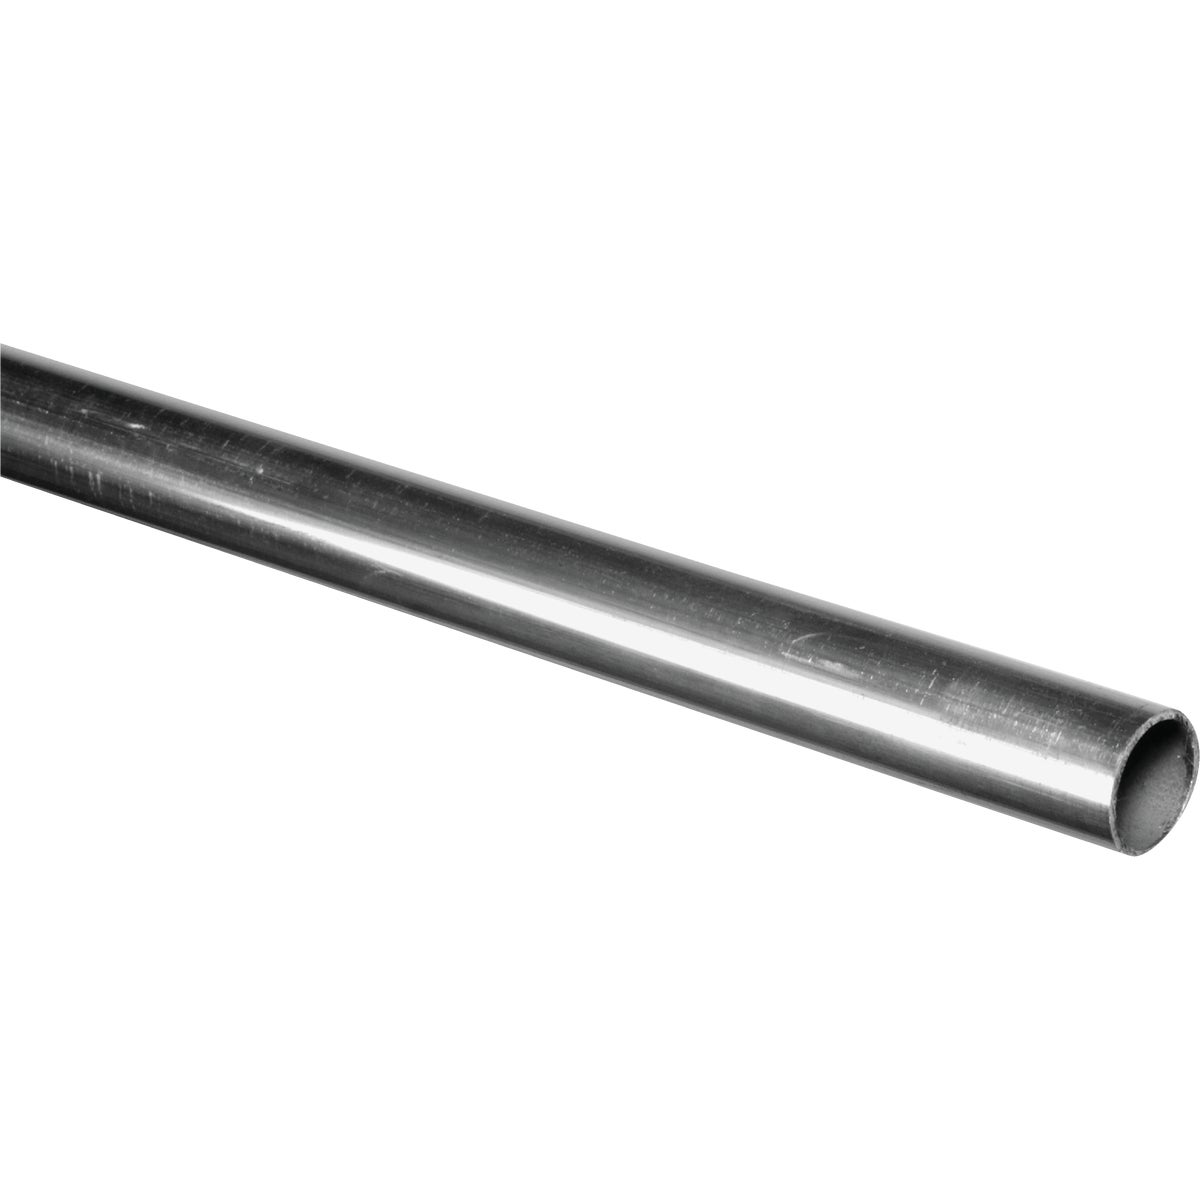 1X3' ALUM ROUND TUBE - N342204 by National Mfg Co